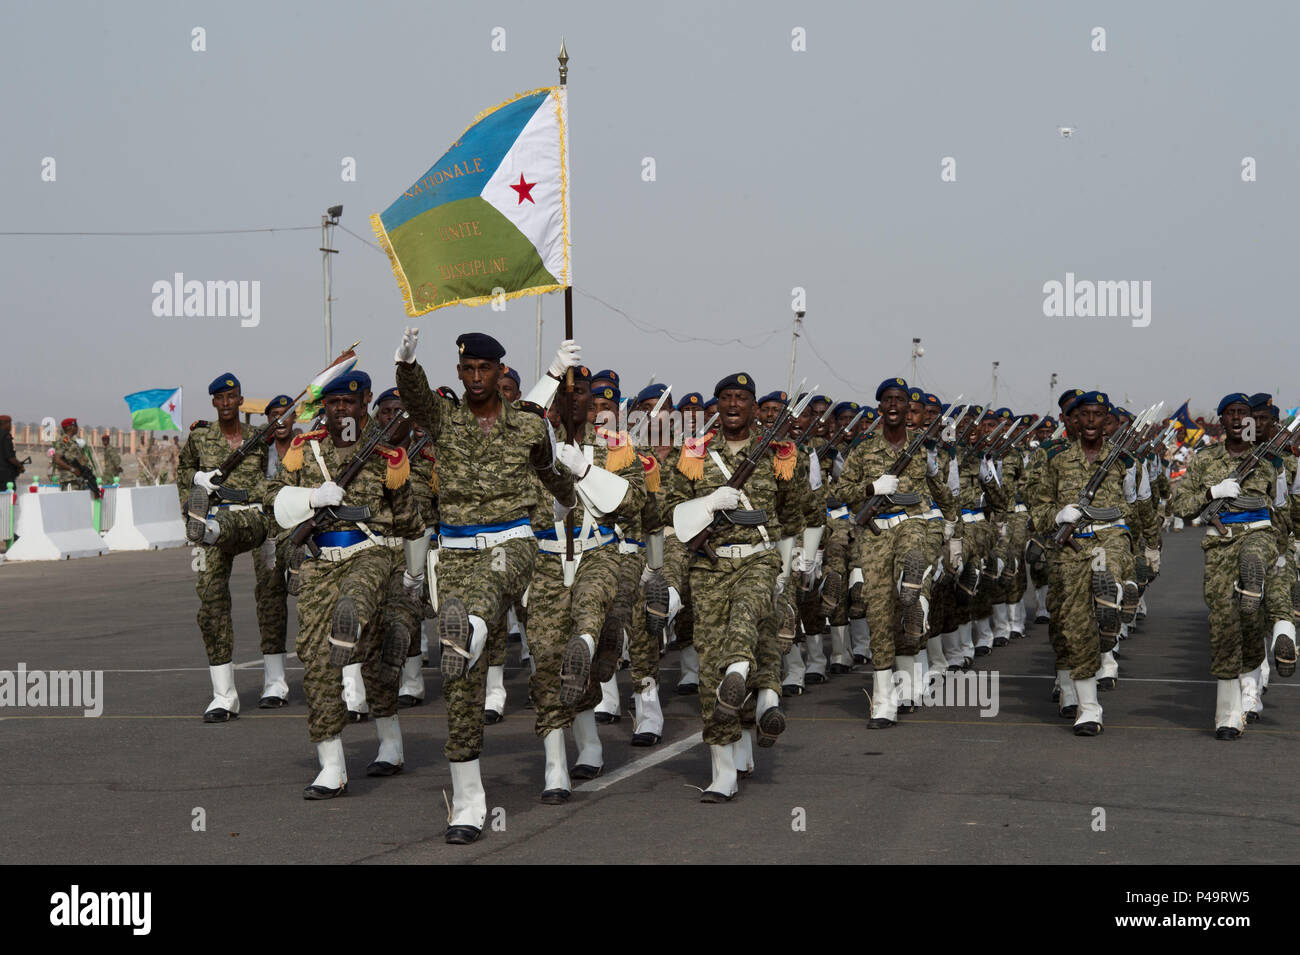 Members of the Djiboutian Armed Forces march in sync during the Djibouti Independence Day parade June 27. 2016, at Djibouti. Service members from all Djiboutian military branches participated in the parade along with law enforcement. (U.S. Air Force photo by Staff Sgt. Eric Summers Jr.) - Stock Image